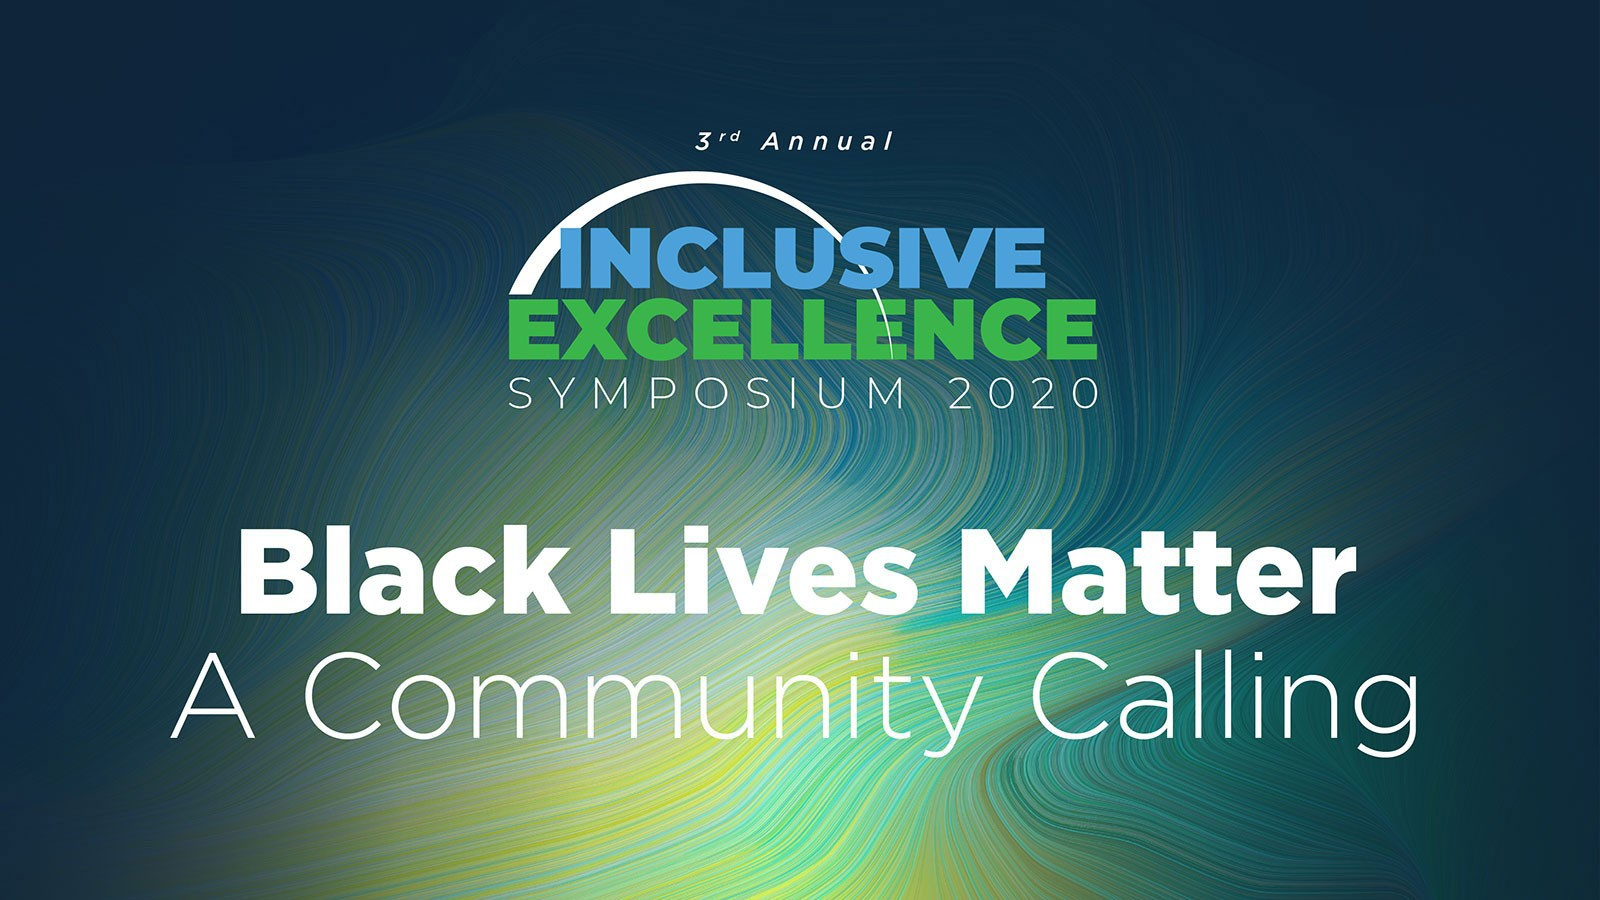 Words: Inclusive Excellence, Black Lives Matter